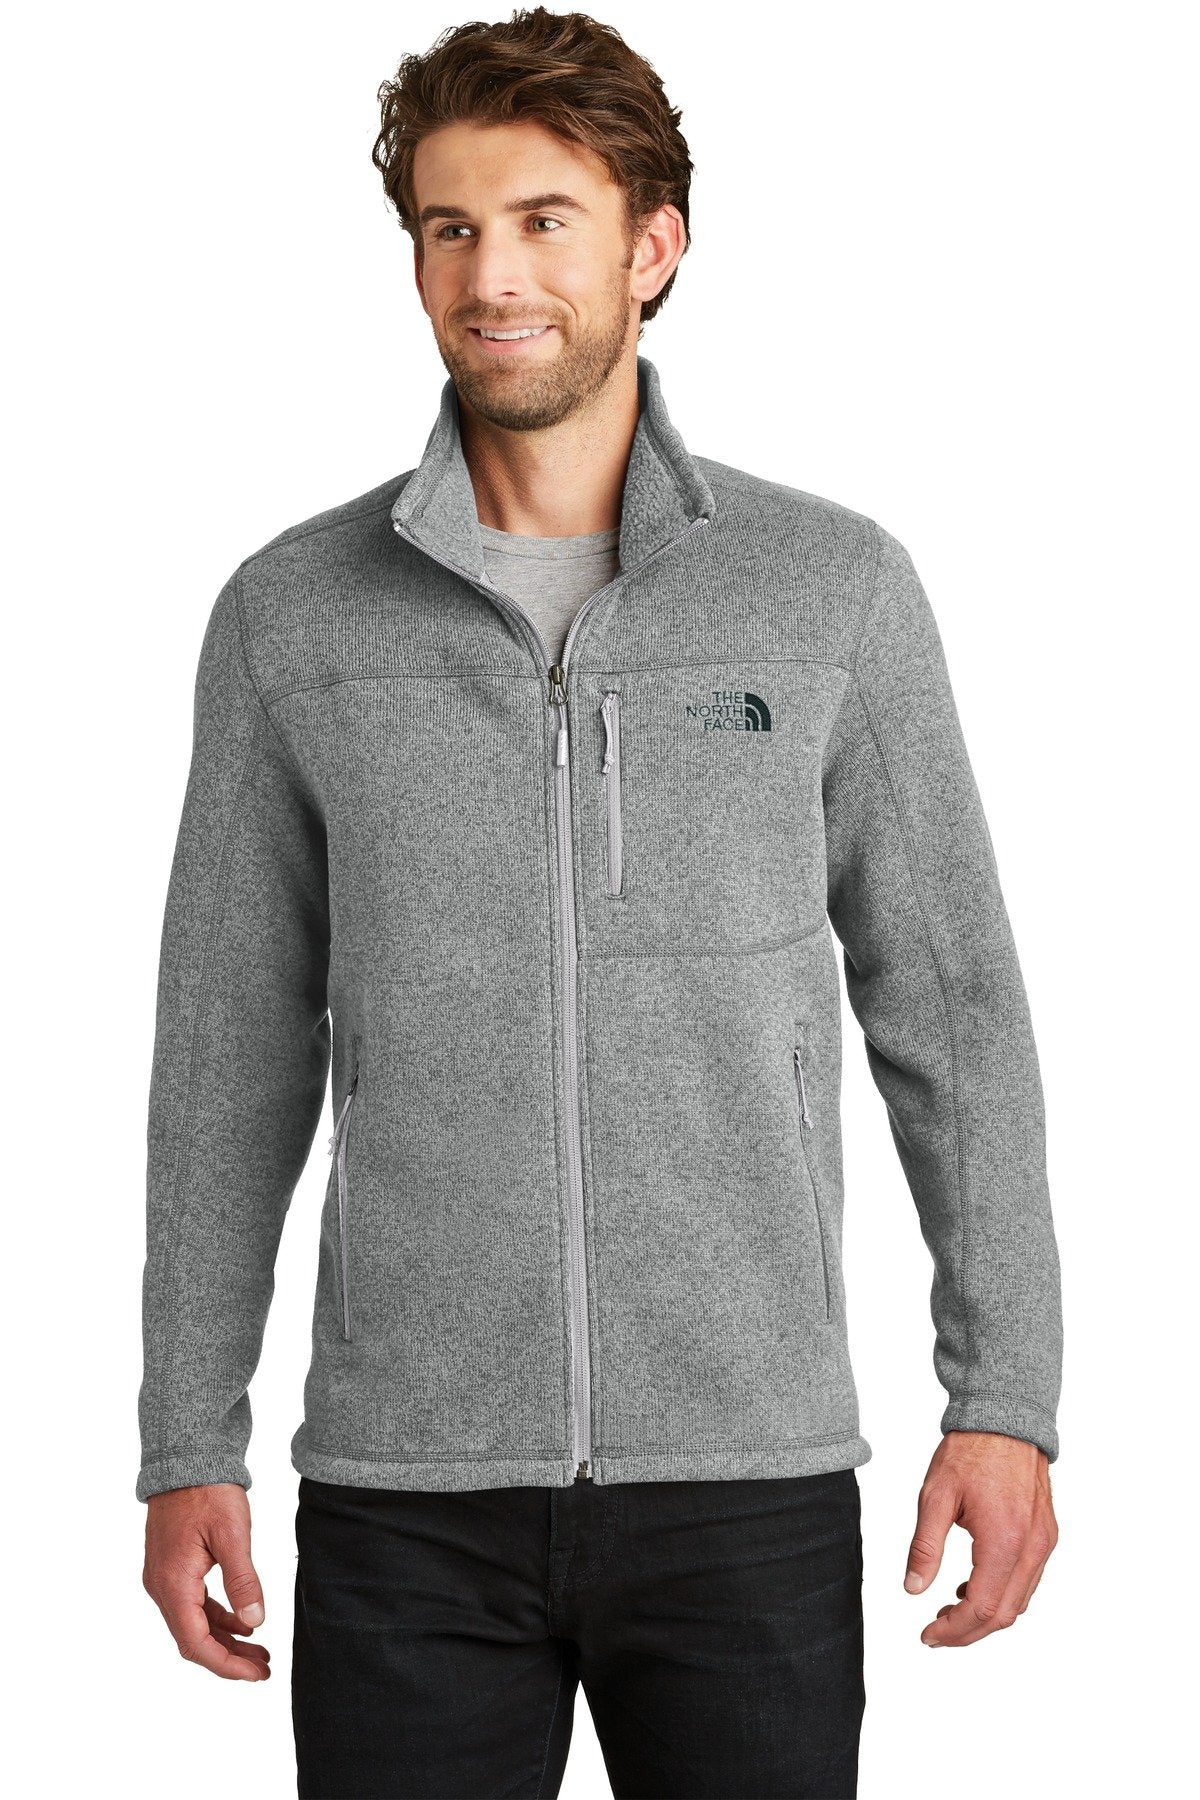 TNF Medium Grey Heather - The North Face NF0A3LH7